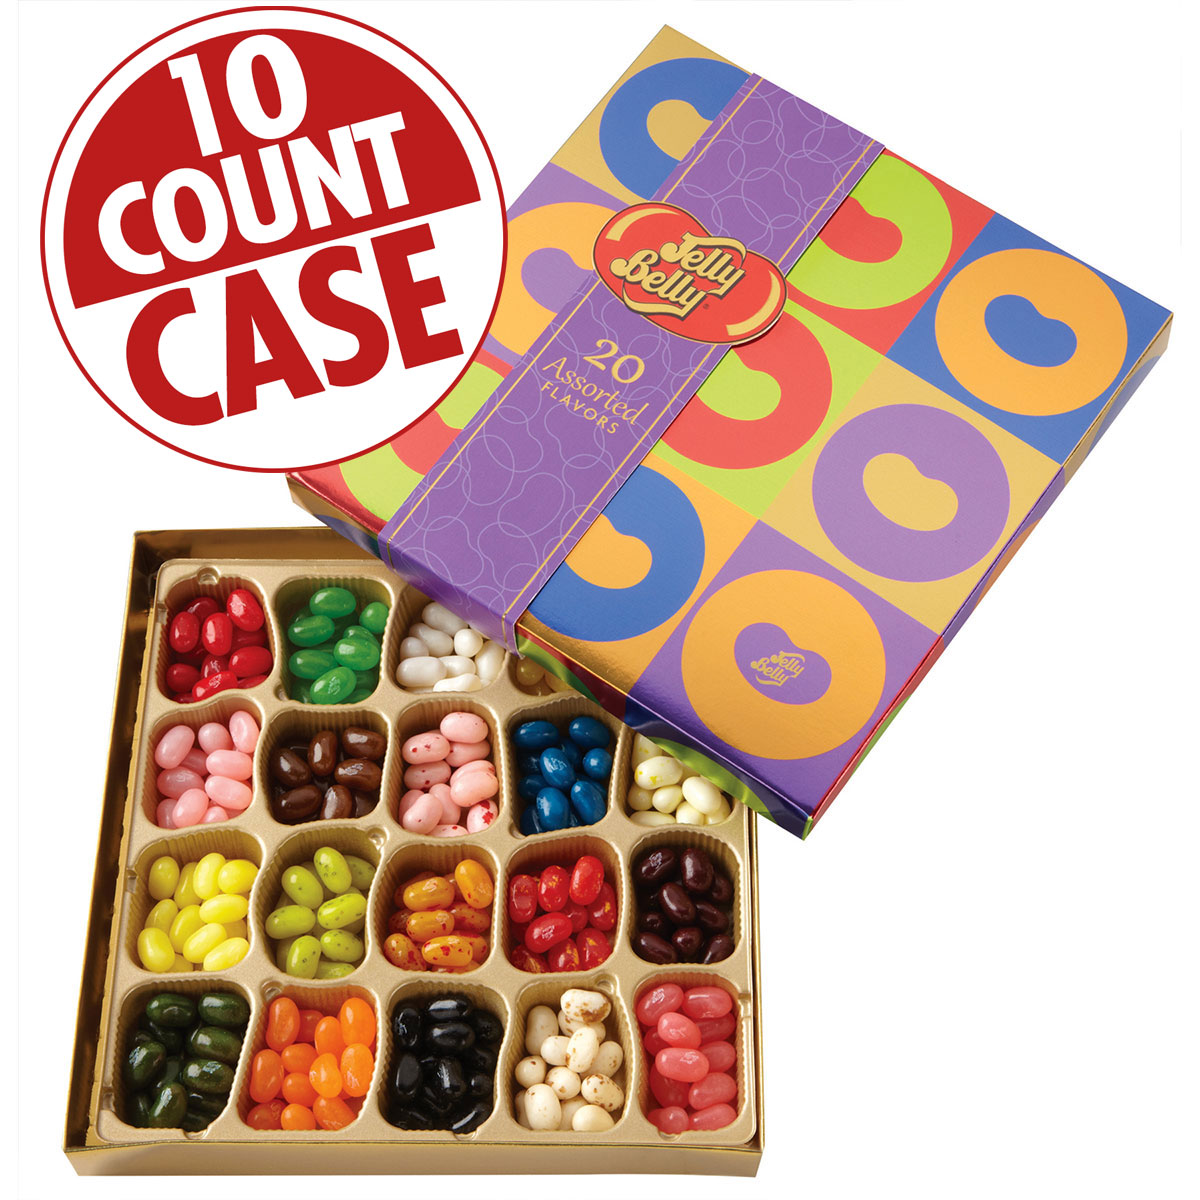 20-Flavor Ultra Gift Box - 10 Count Case